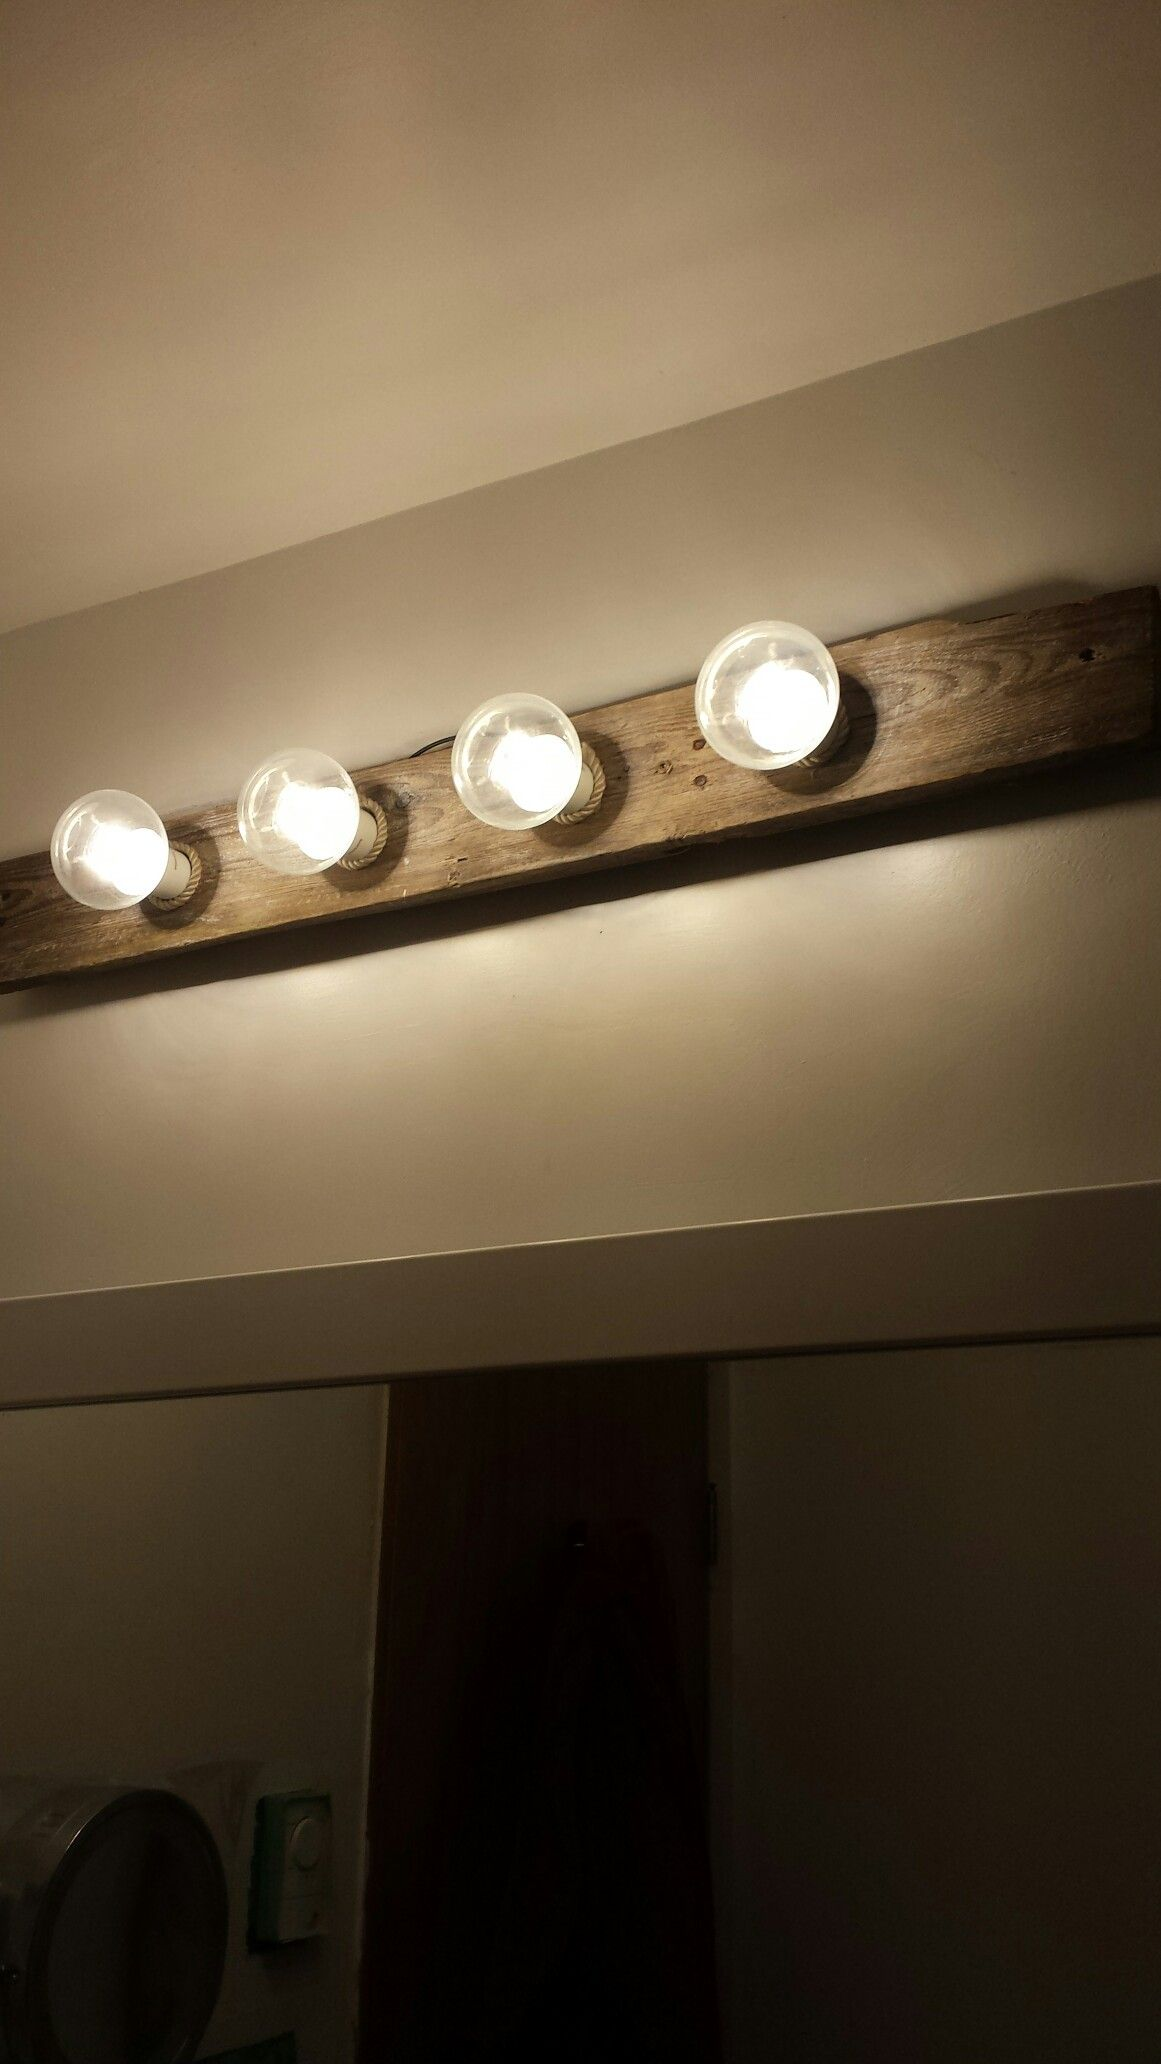 Driftwood Led Lights From Old Hollywood Bathroom Fixture In 2020 Bathroom Light Fixtures